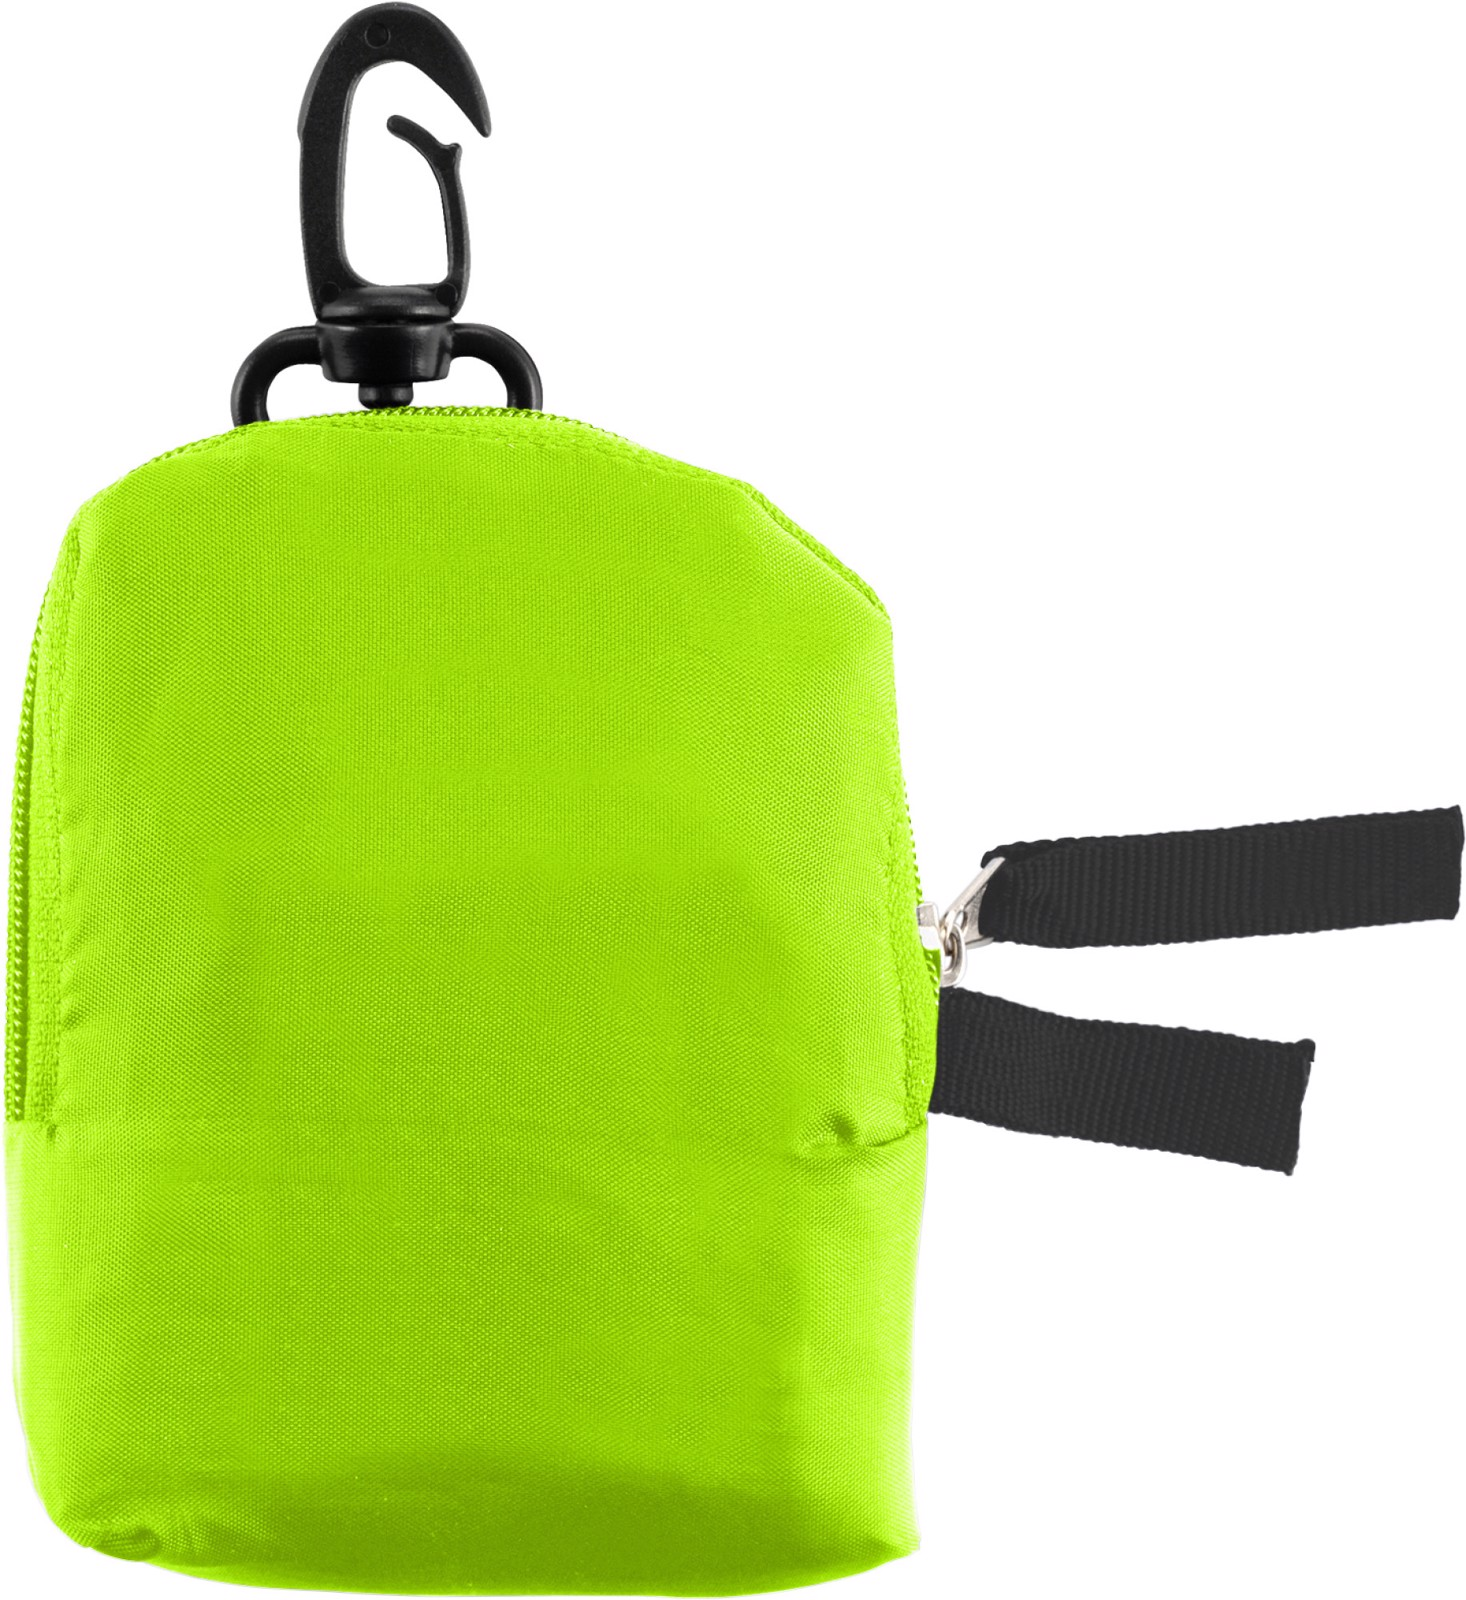 Polyester (190T) shopping bag - Lime